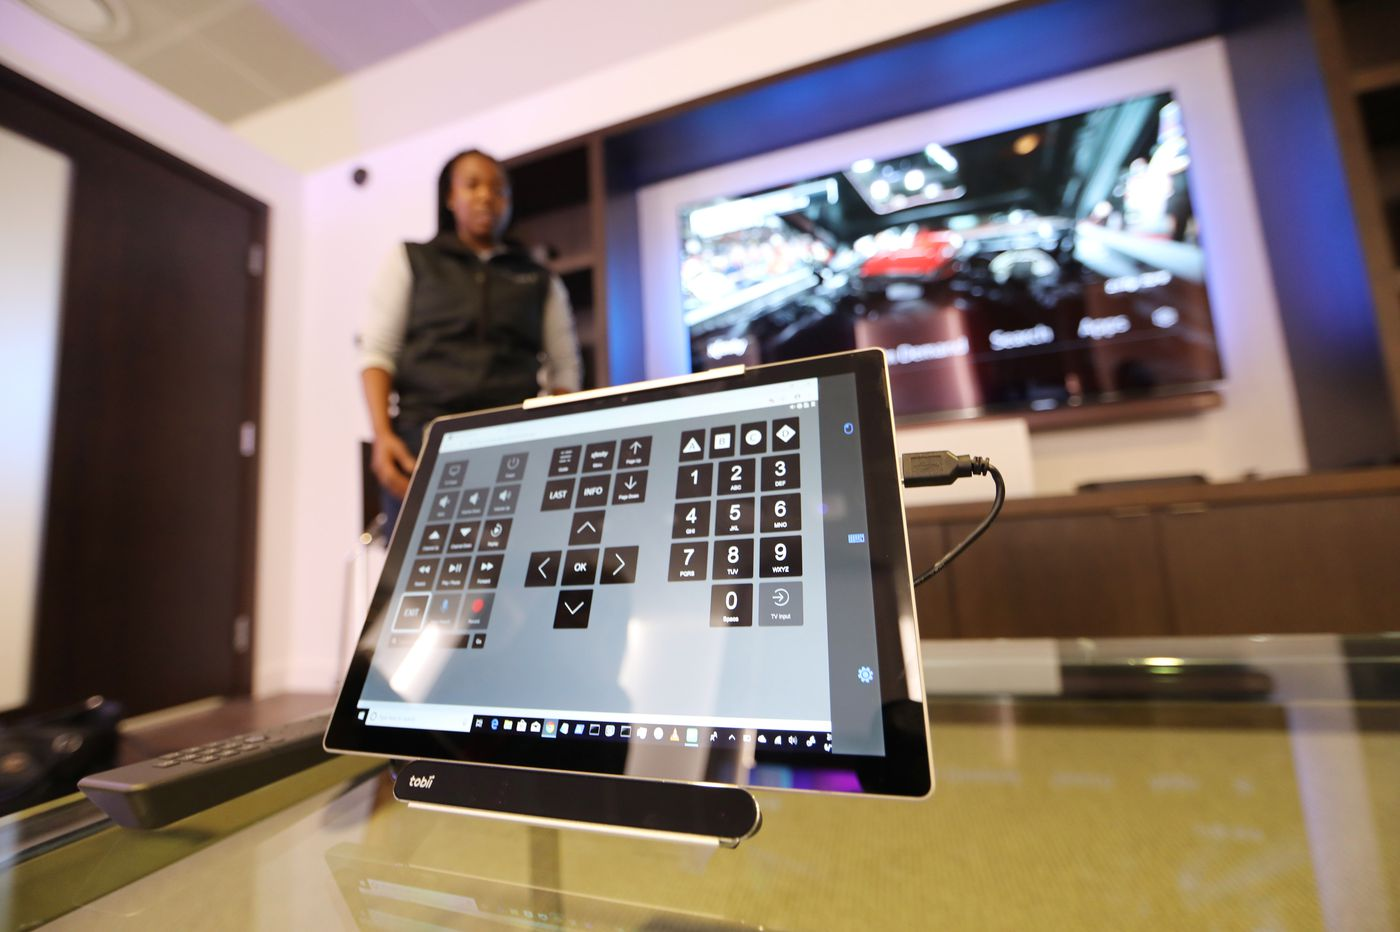 Comcast will now let people with disabilities control their TVs with their eyes